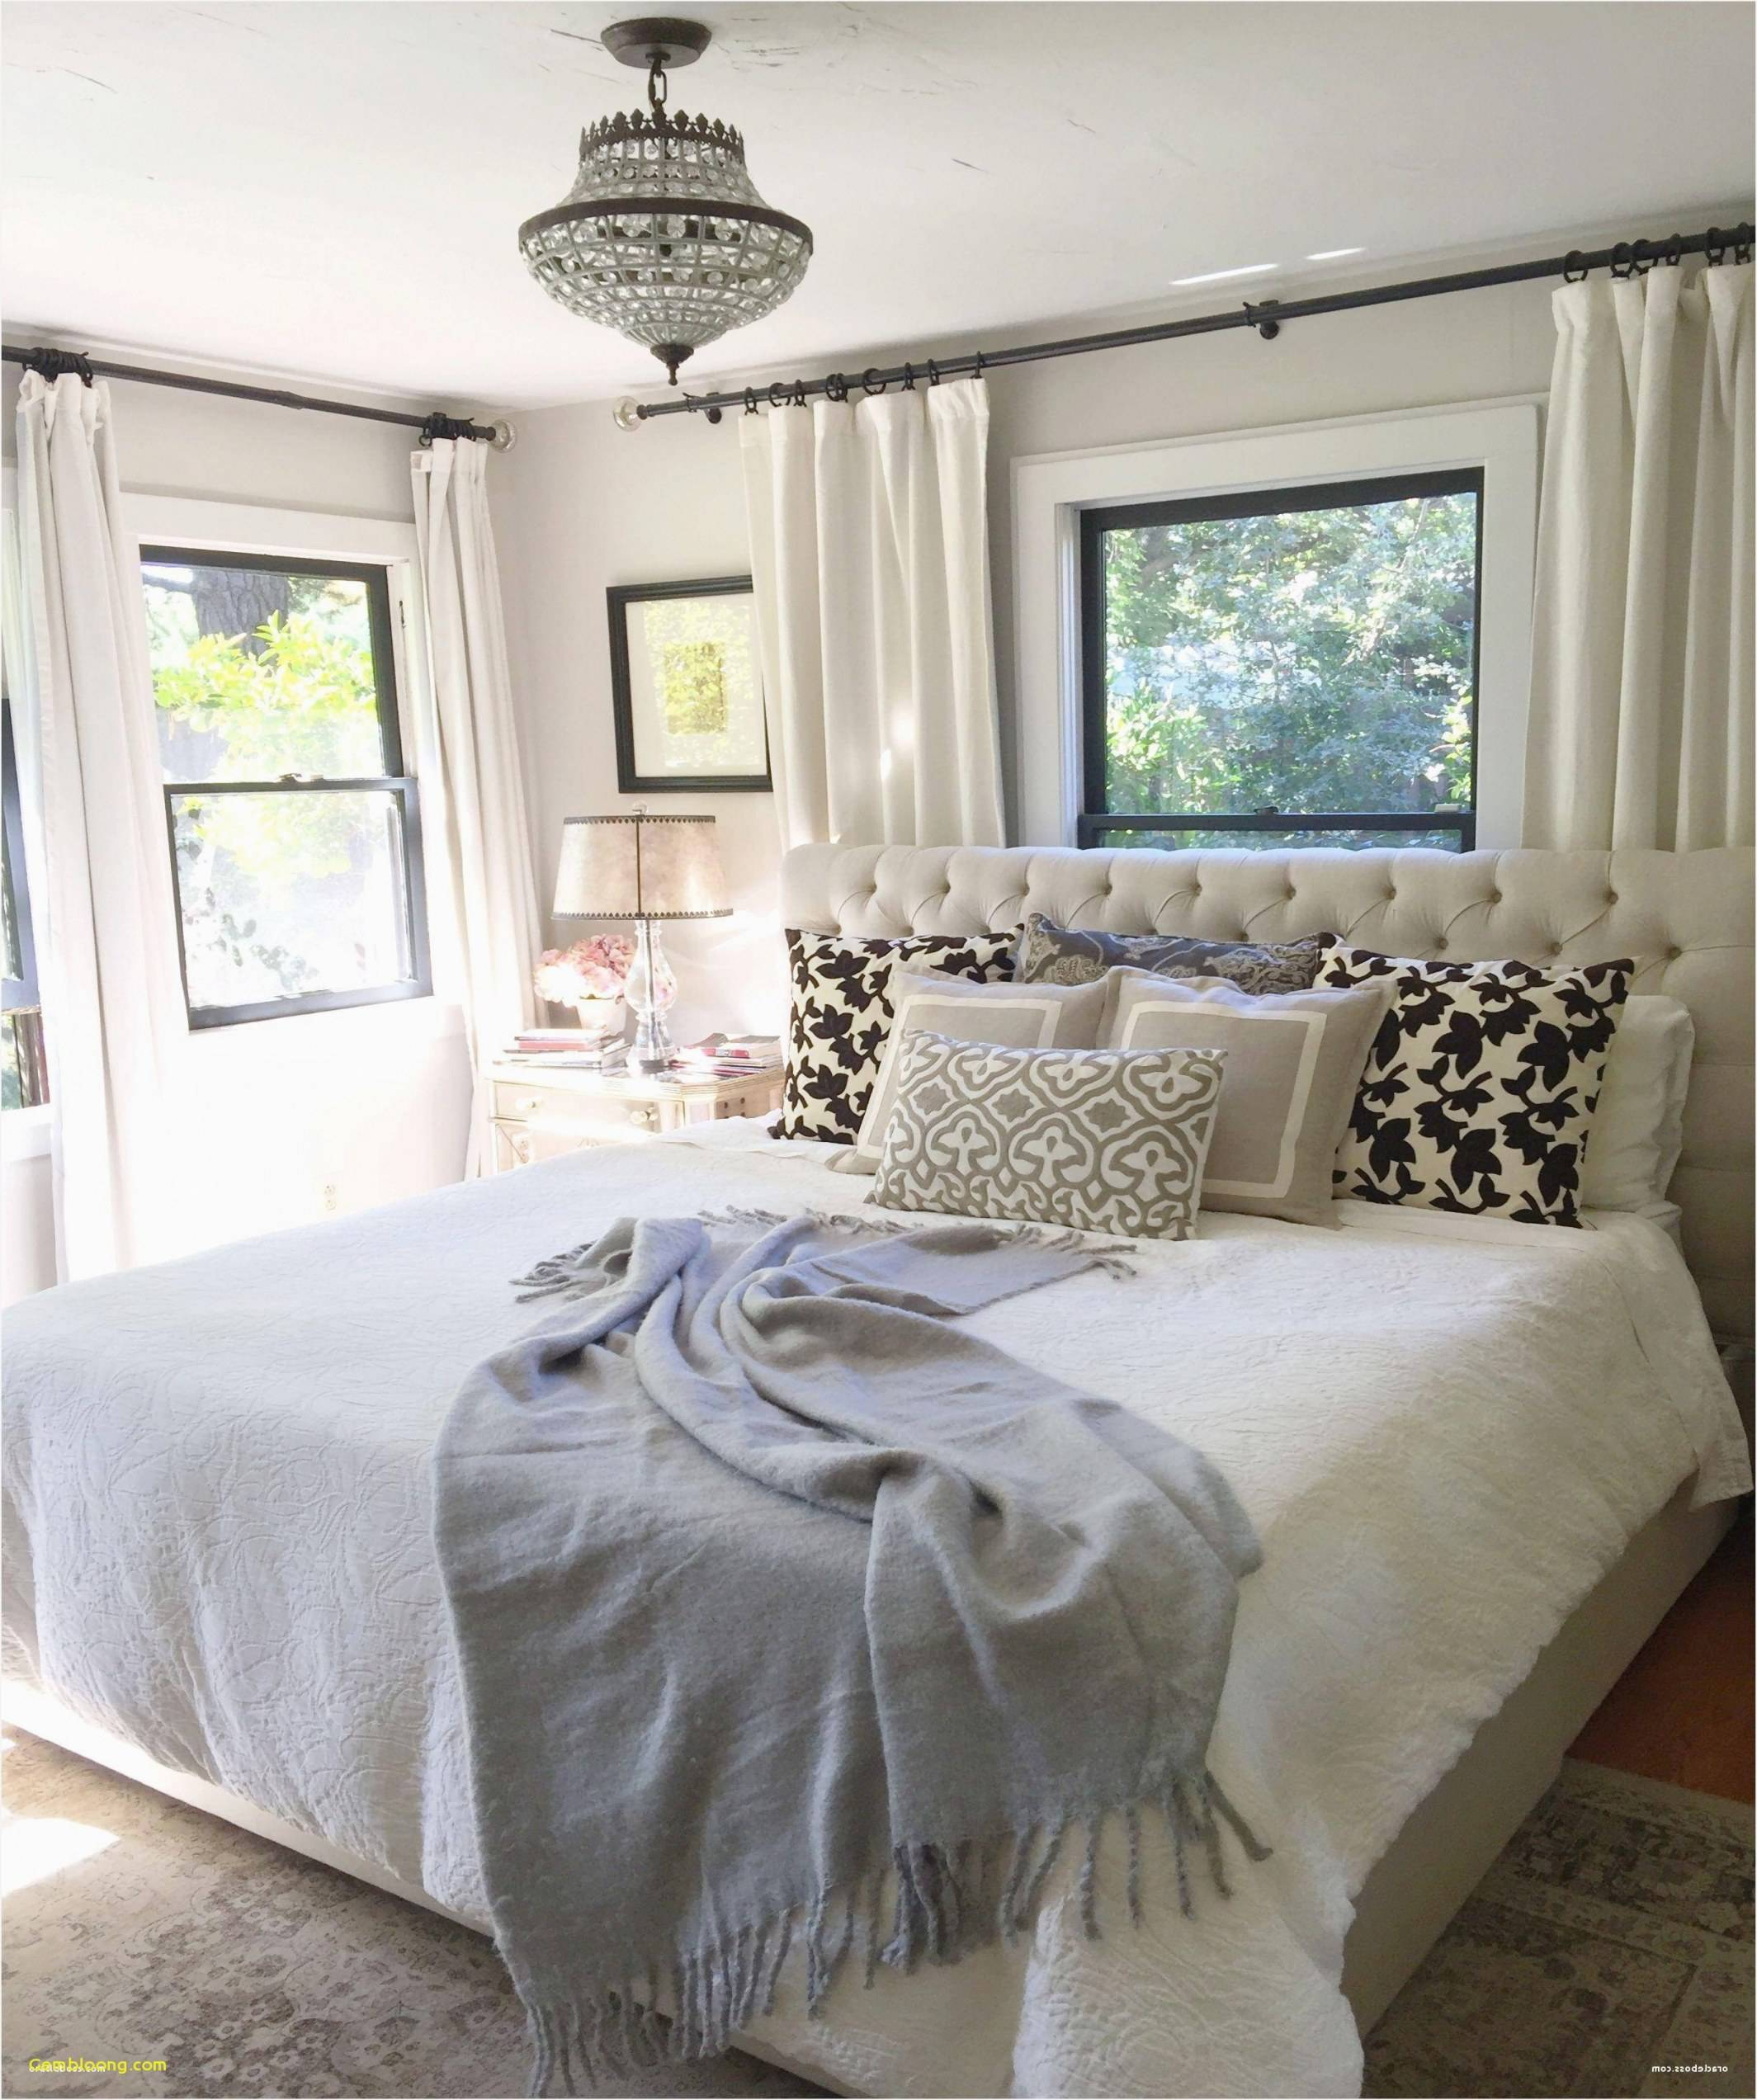 teen girls bedroom ideas 43 lovely teenage girl bedroom ideas cheap of teen girls bedroom ideas 1